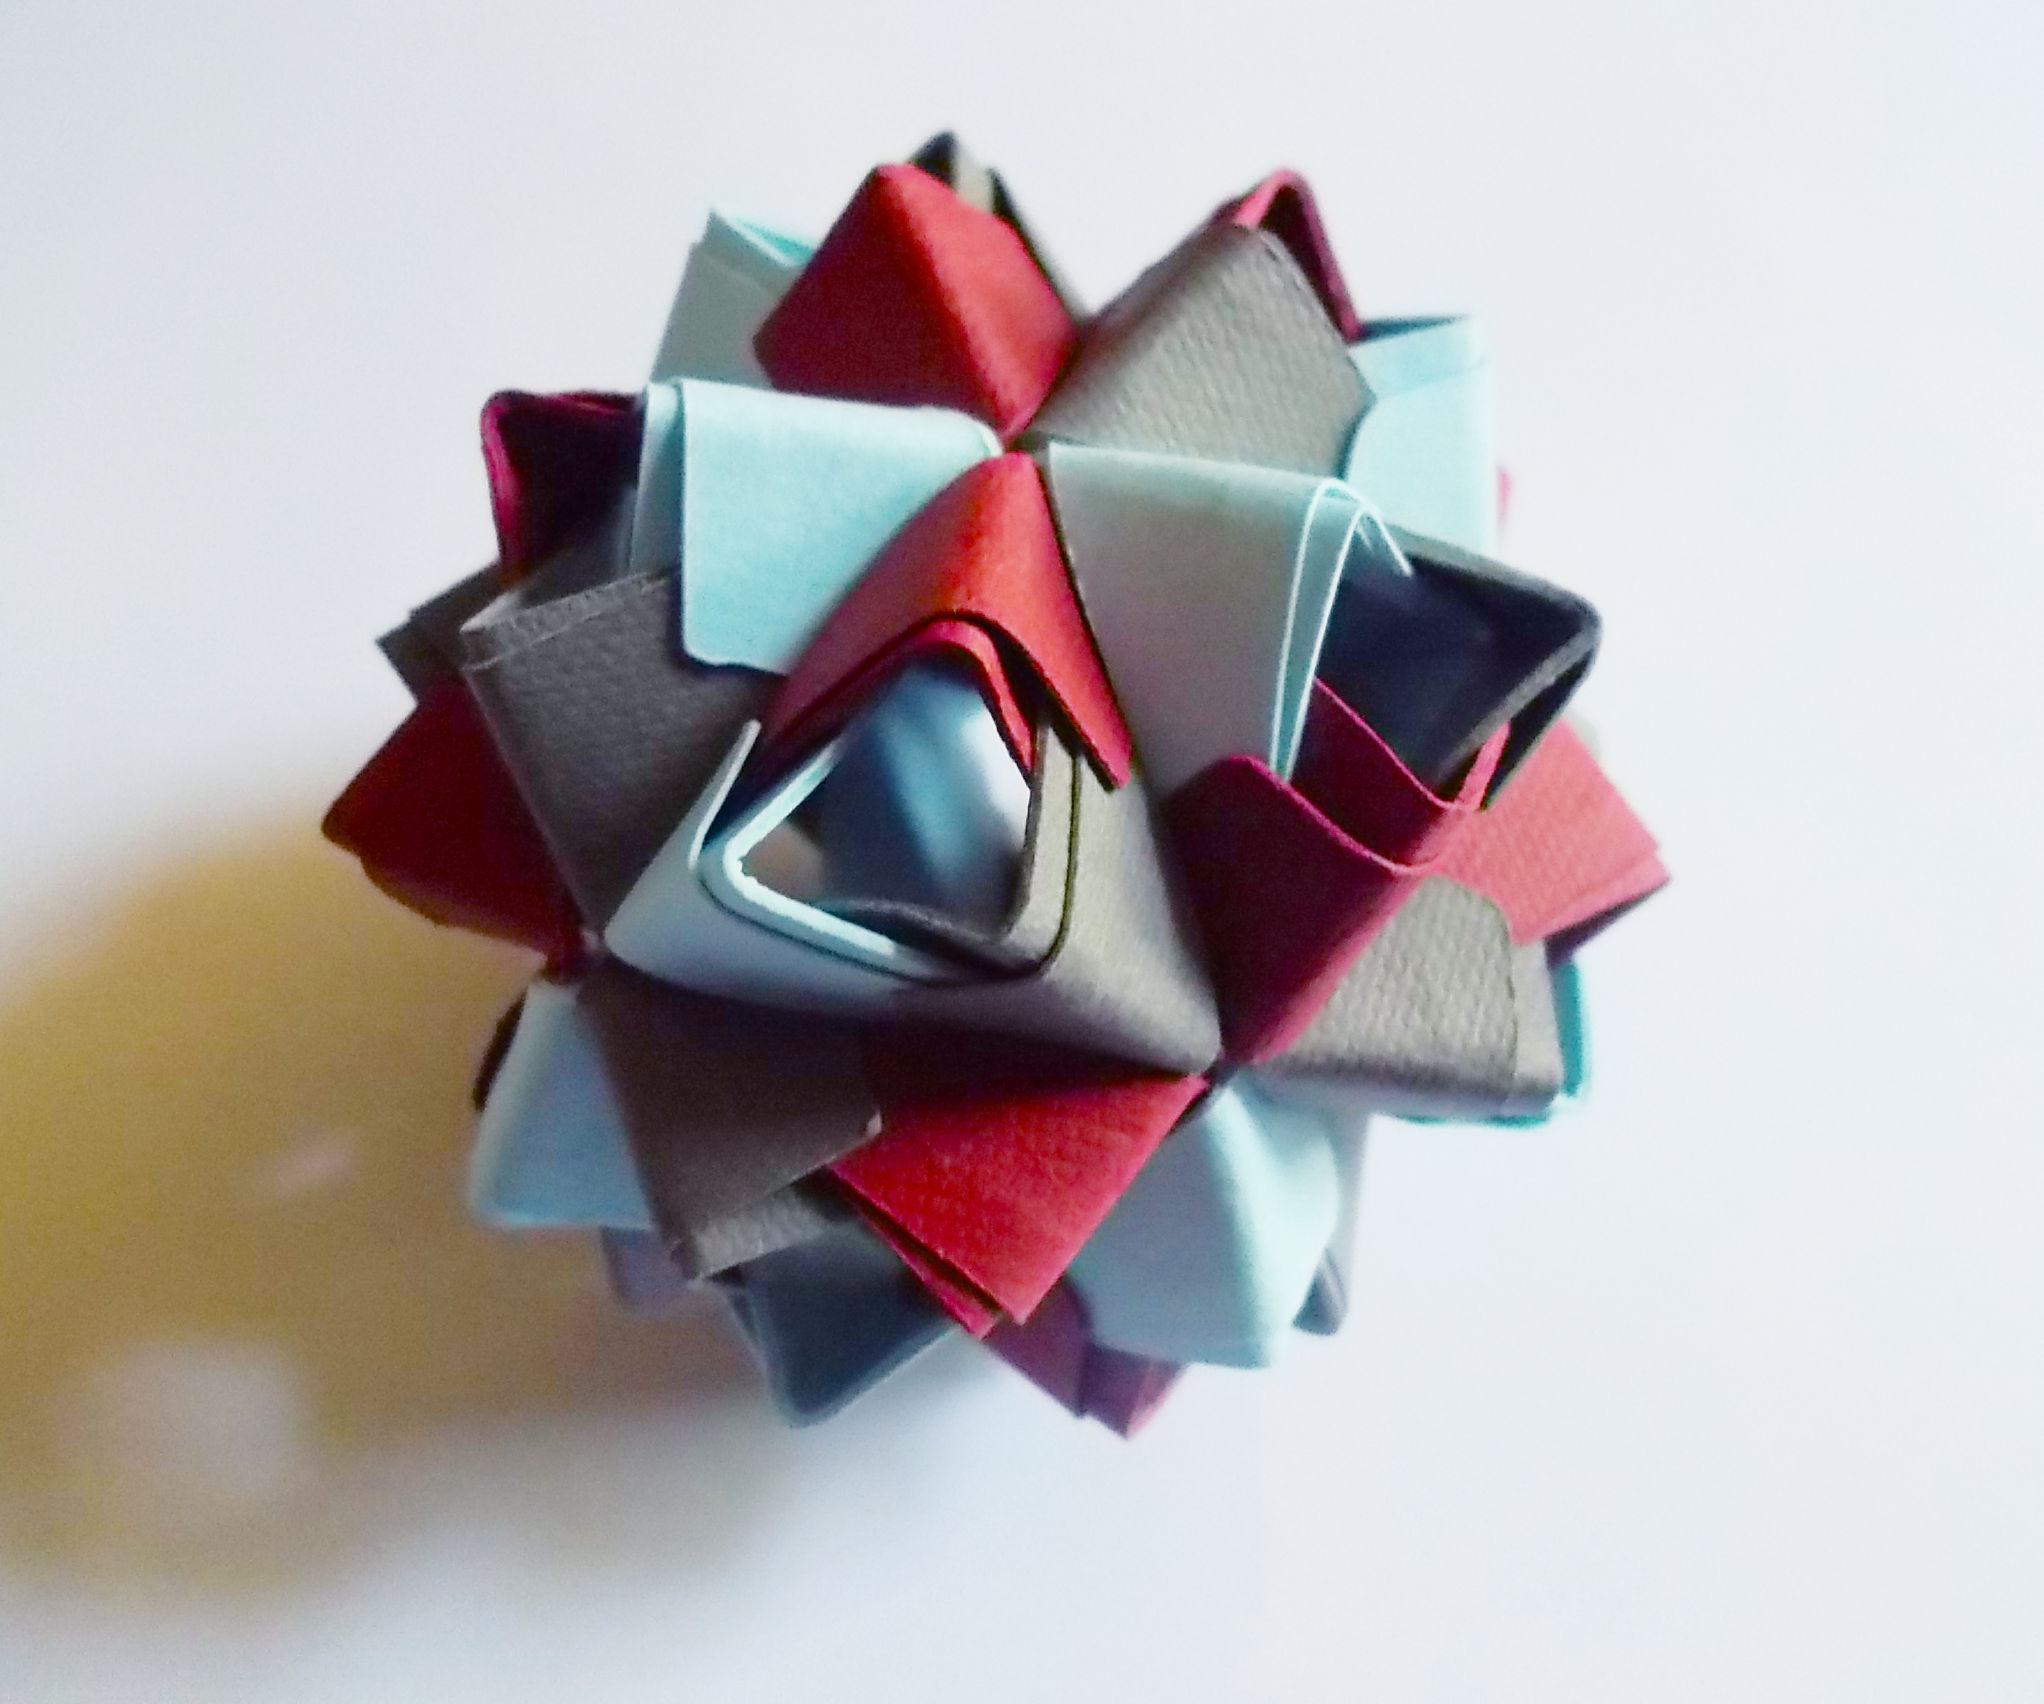 Sturdy Kusudama for the Origami-Impaired